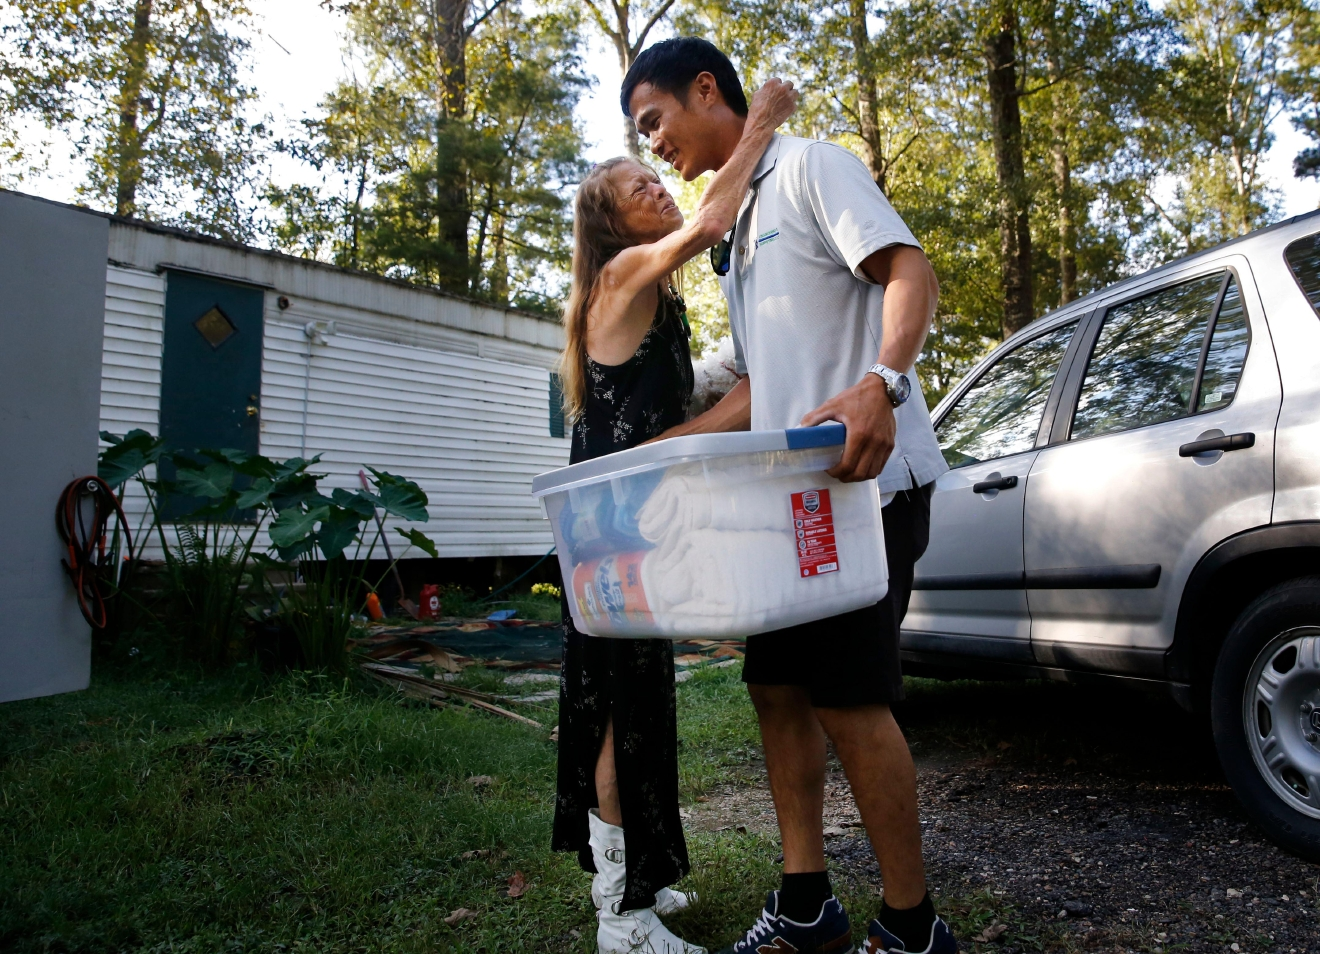 David Phung, who rescued Hailey Brouillette and her dog Sassy from her sinking car in recent floodwaters, hugs her as he gives her a box of household supplies, as they reunite for the first time in Denham Springs, La., Monday, Sept. 12, 2016. An Aug. 13 rescue video shot by WAFB-TV has millions of YouTube views. It shows floodwaters swallowing Brouillette's red convertible as Phung grabbed Brouillette by her arms as the car disappeared in the murky waters. (AP Photo/Gerald Herbert)